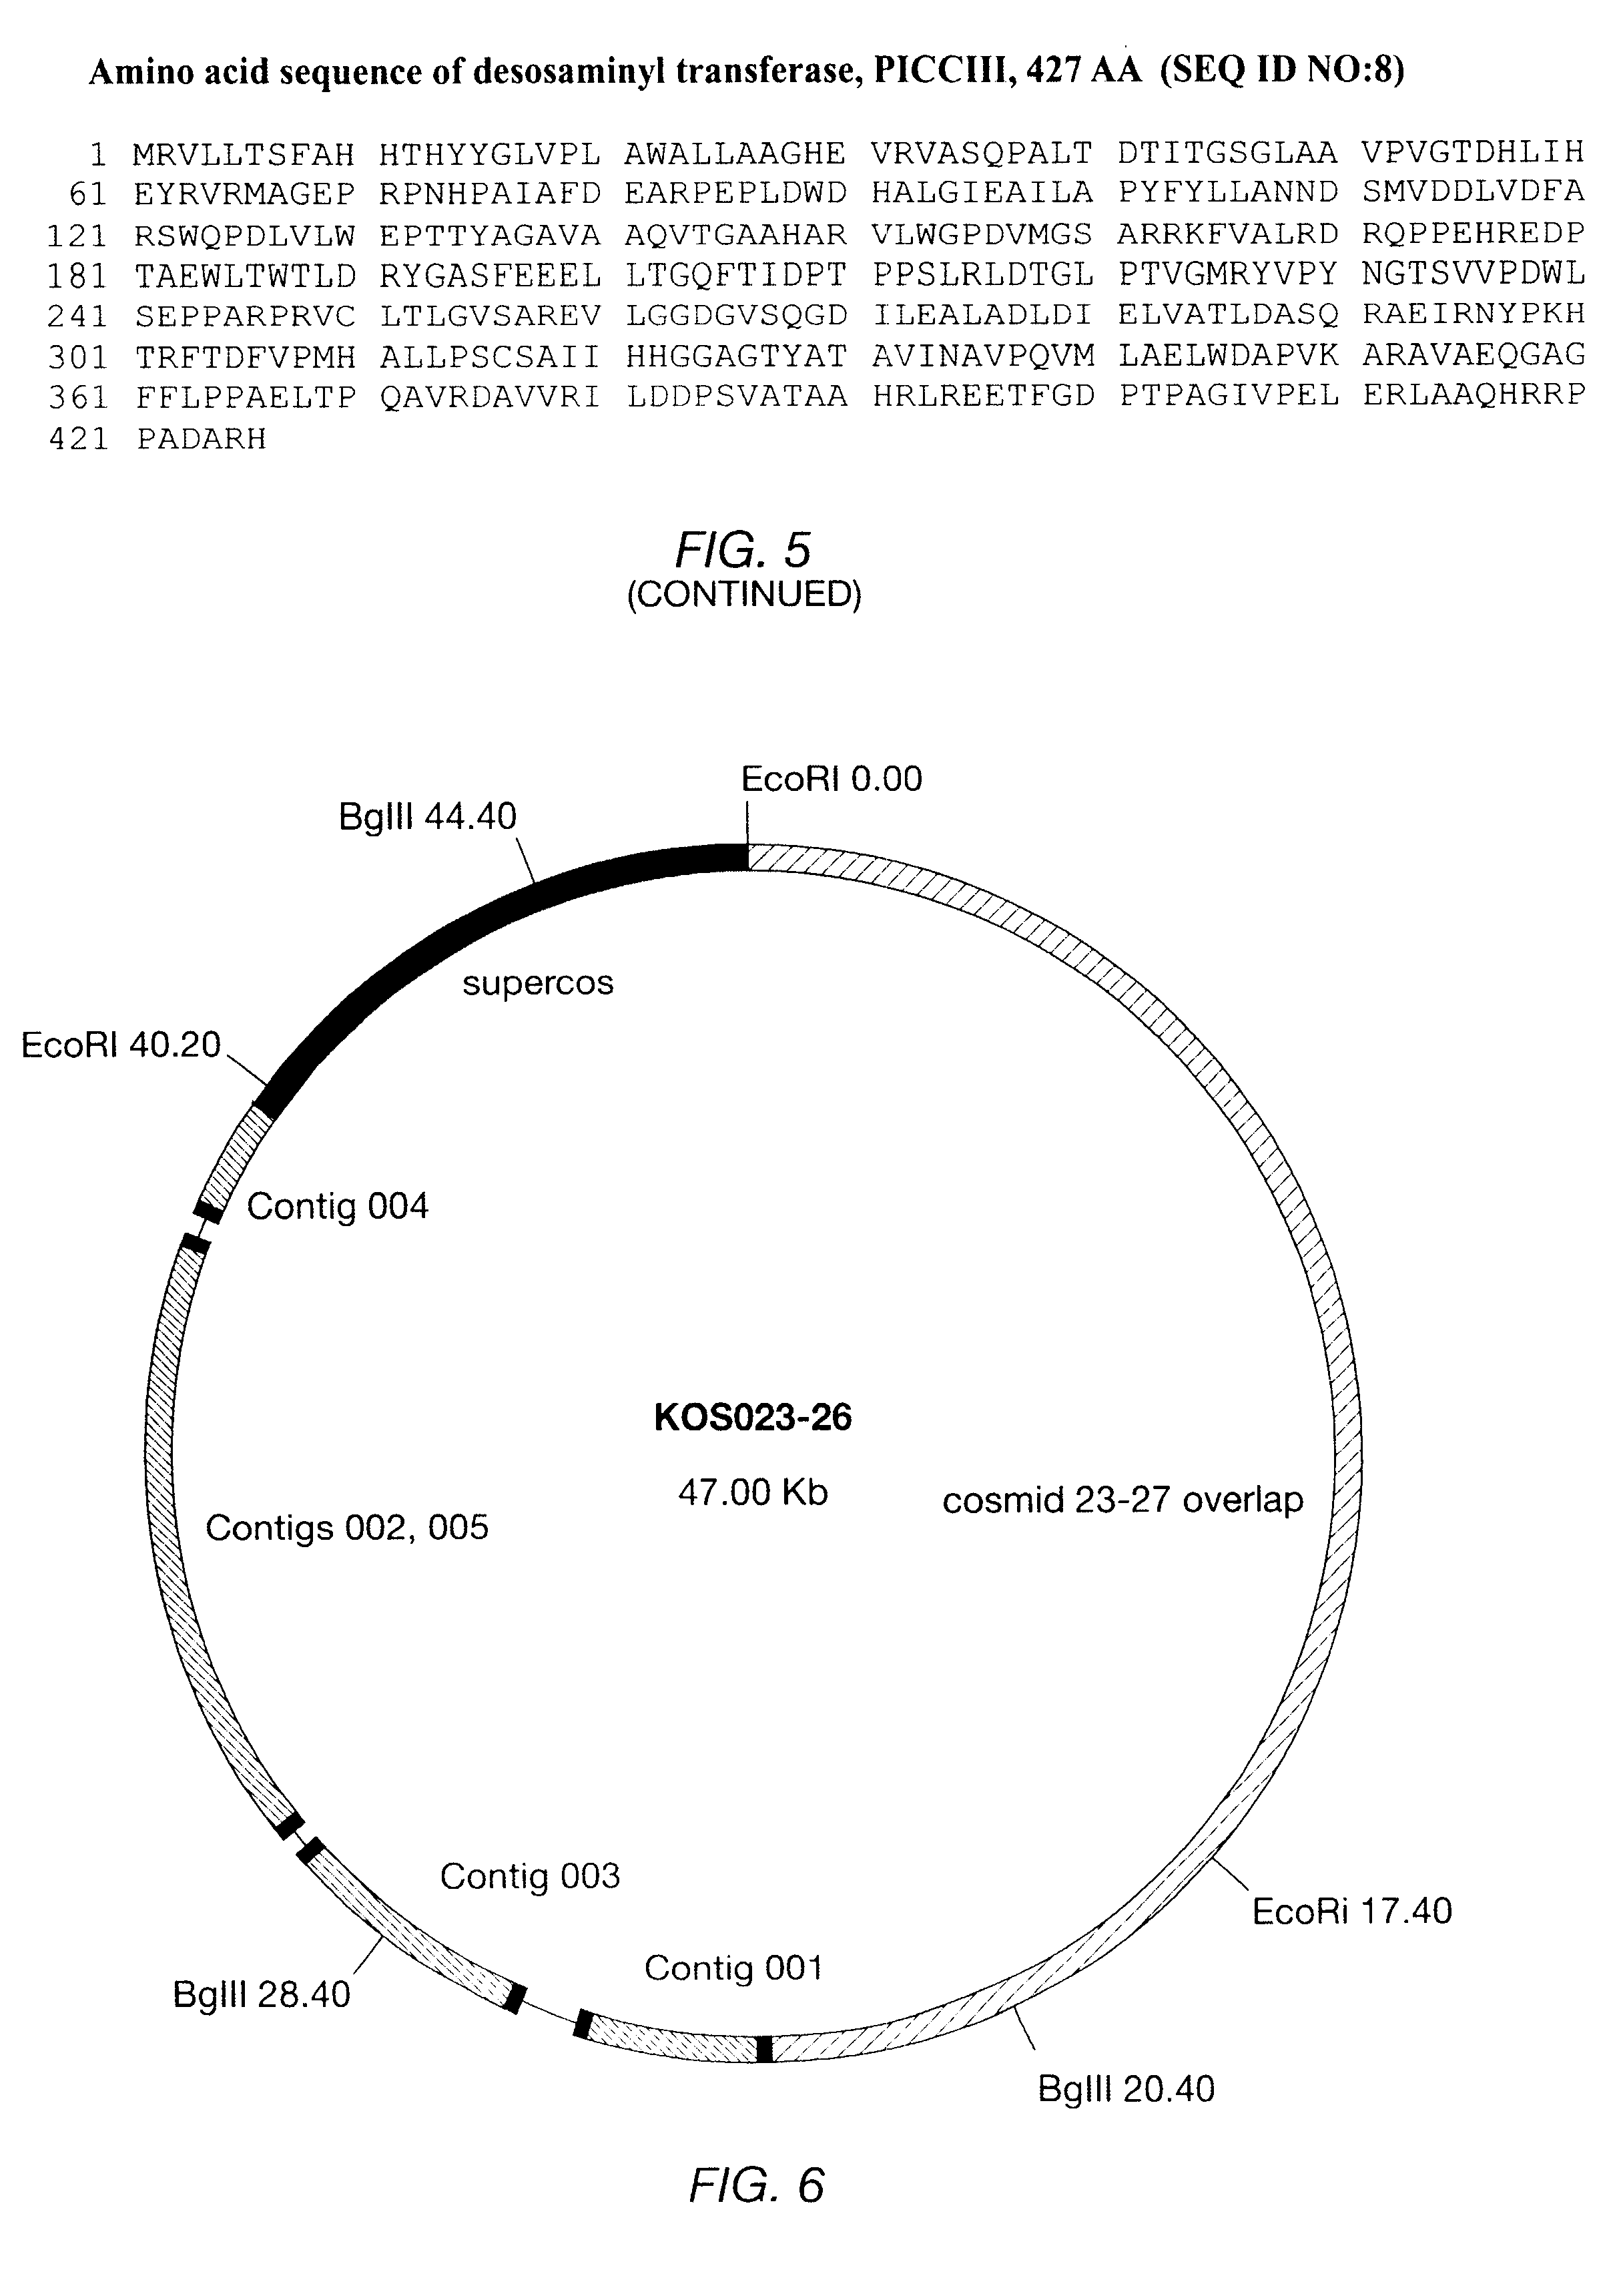 gene chlr in streptomyces venezuelae  of a silent streptomyces venezuelae biosynthetic gene cluster  in which  equimolar quantities of sodium chloride and sodium bromide.